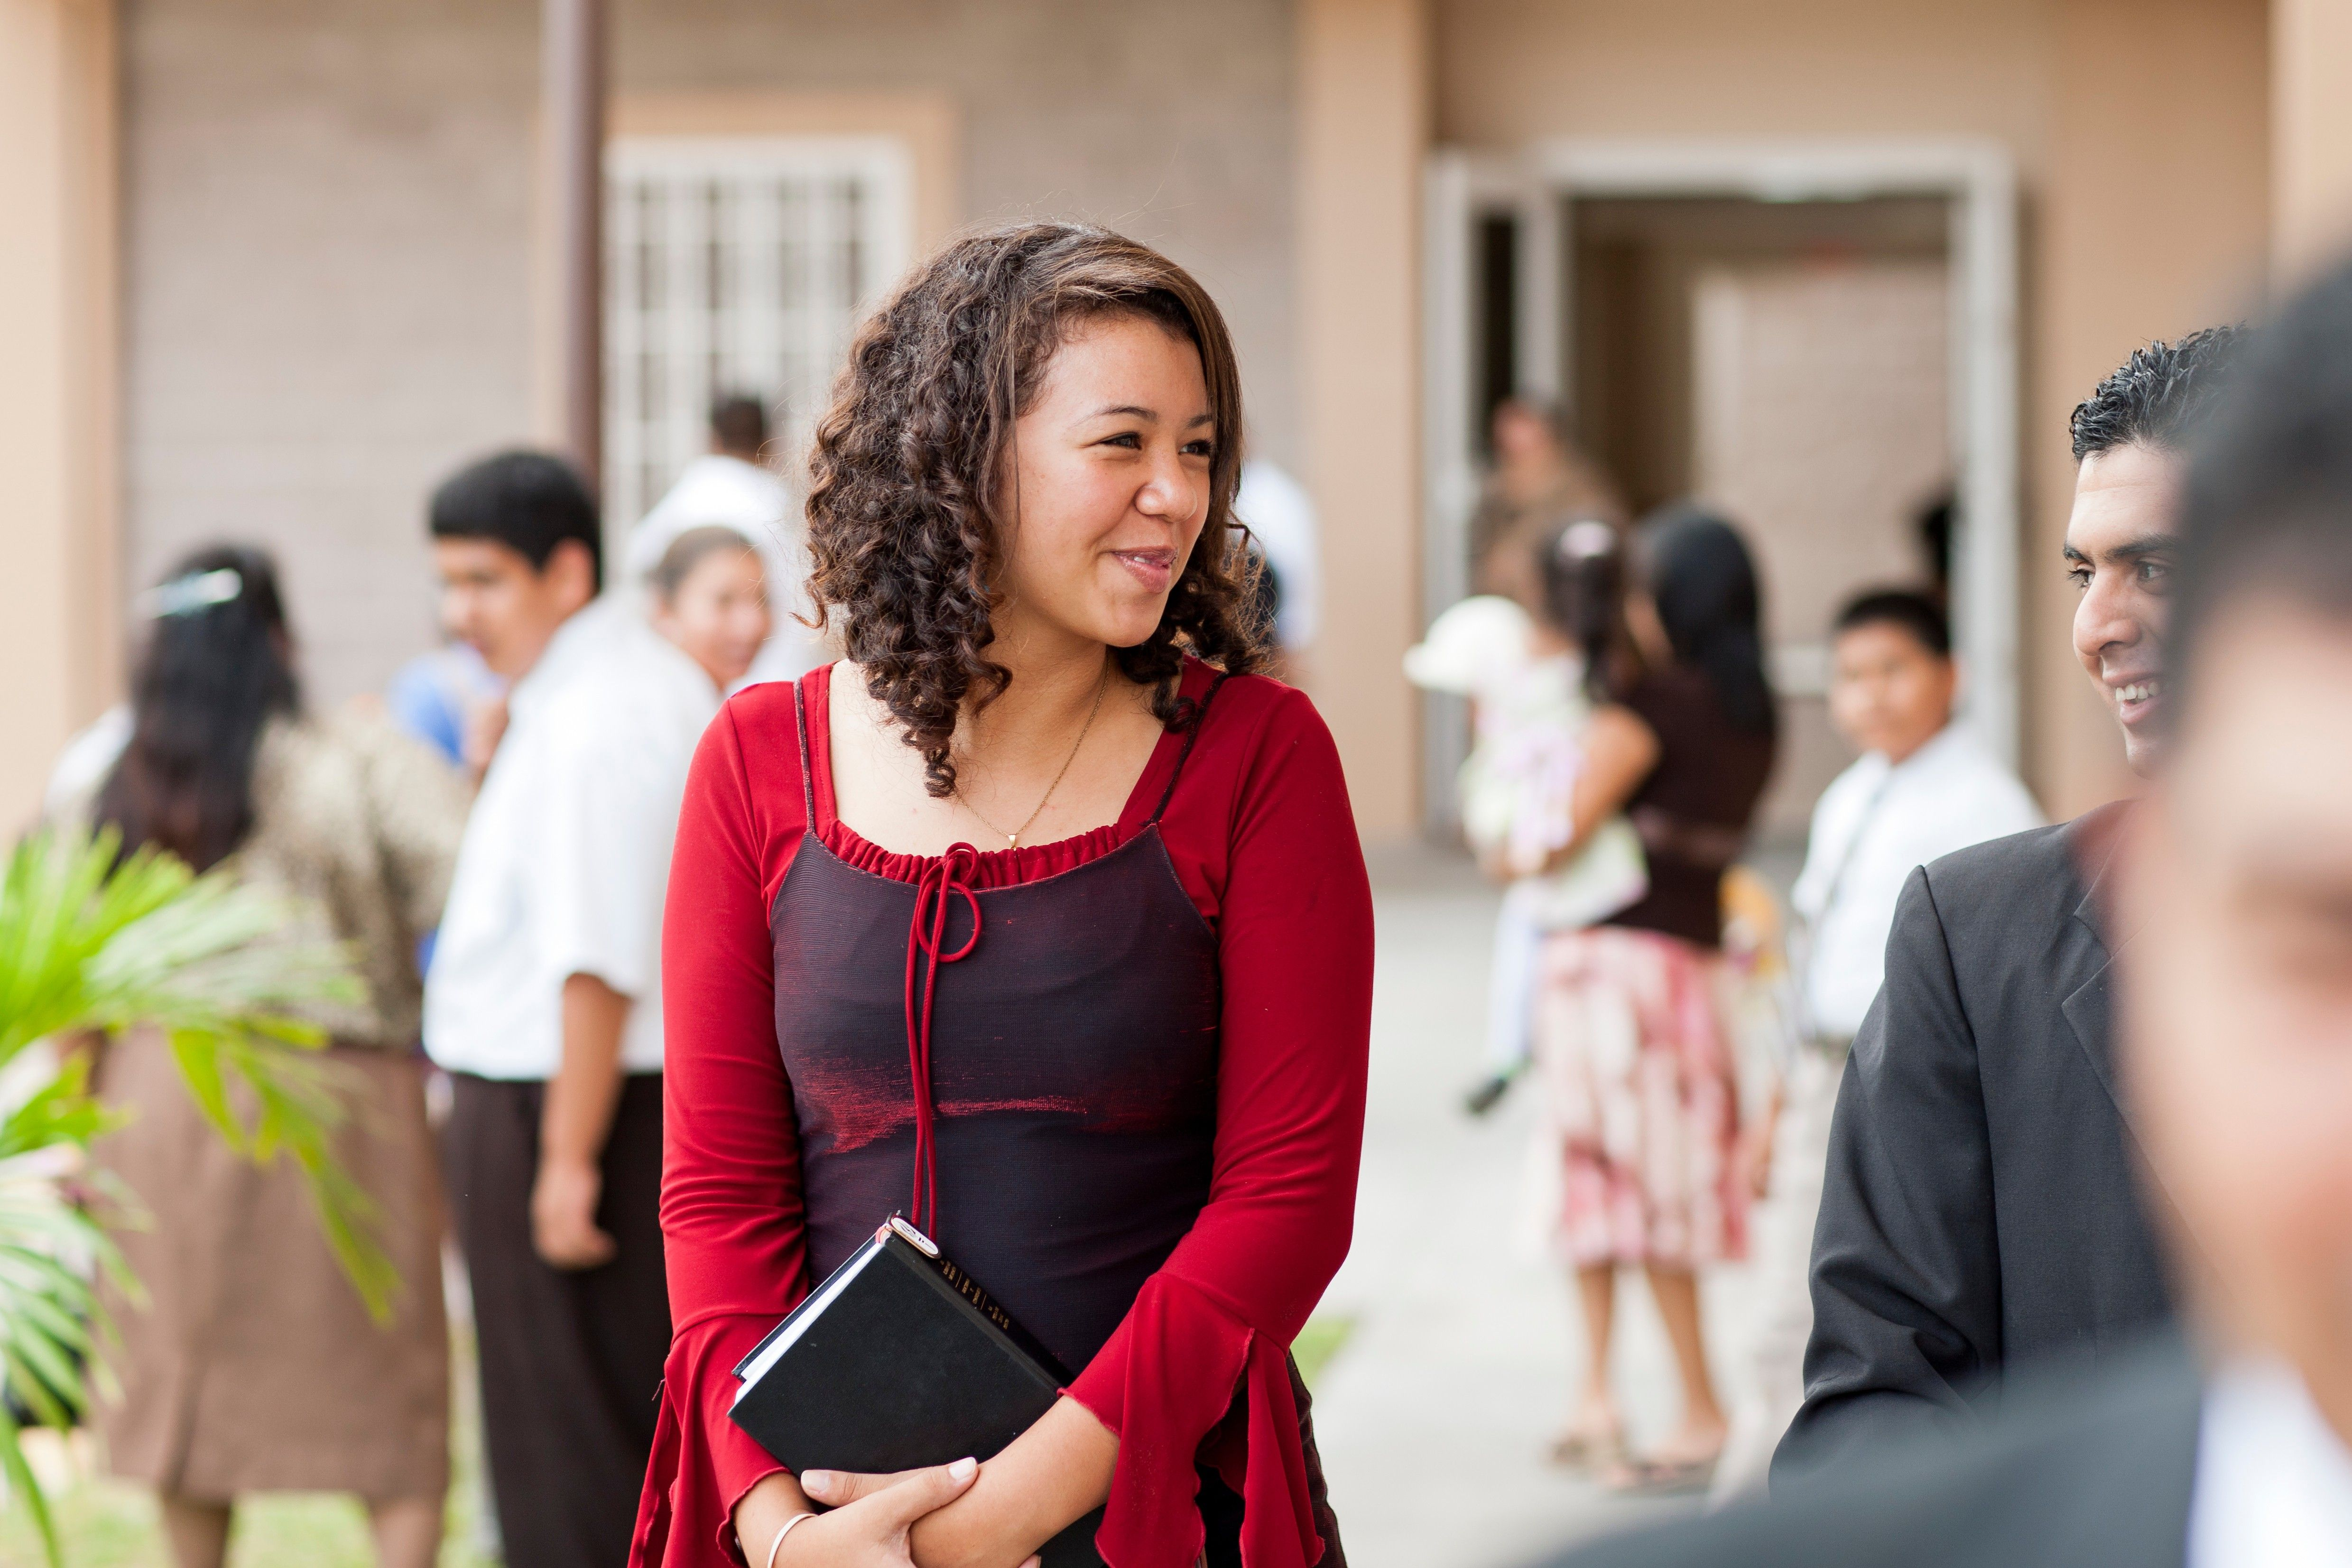 A portrait of a young woman holding scriptures outside a Church building in El Salvador.